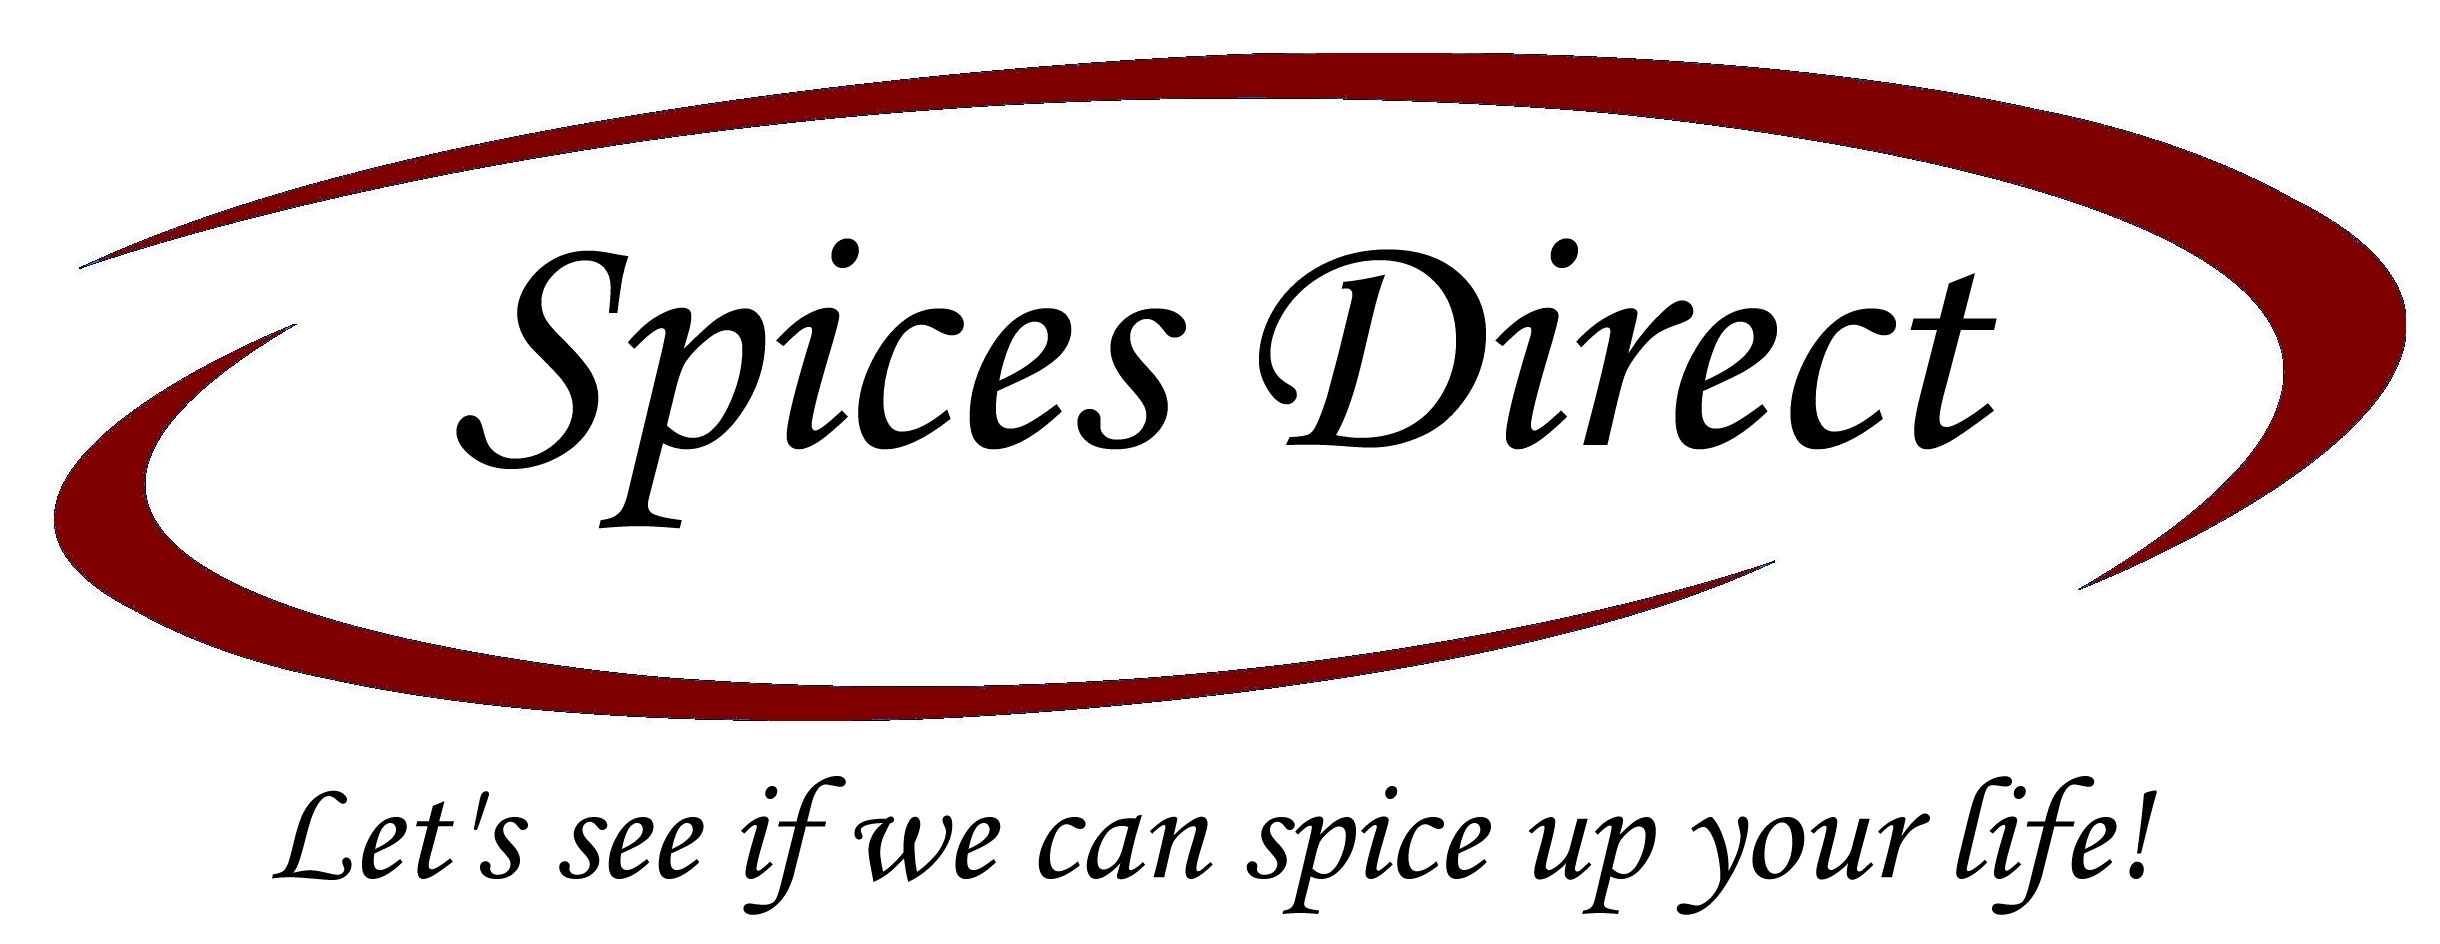 Spices Direct